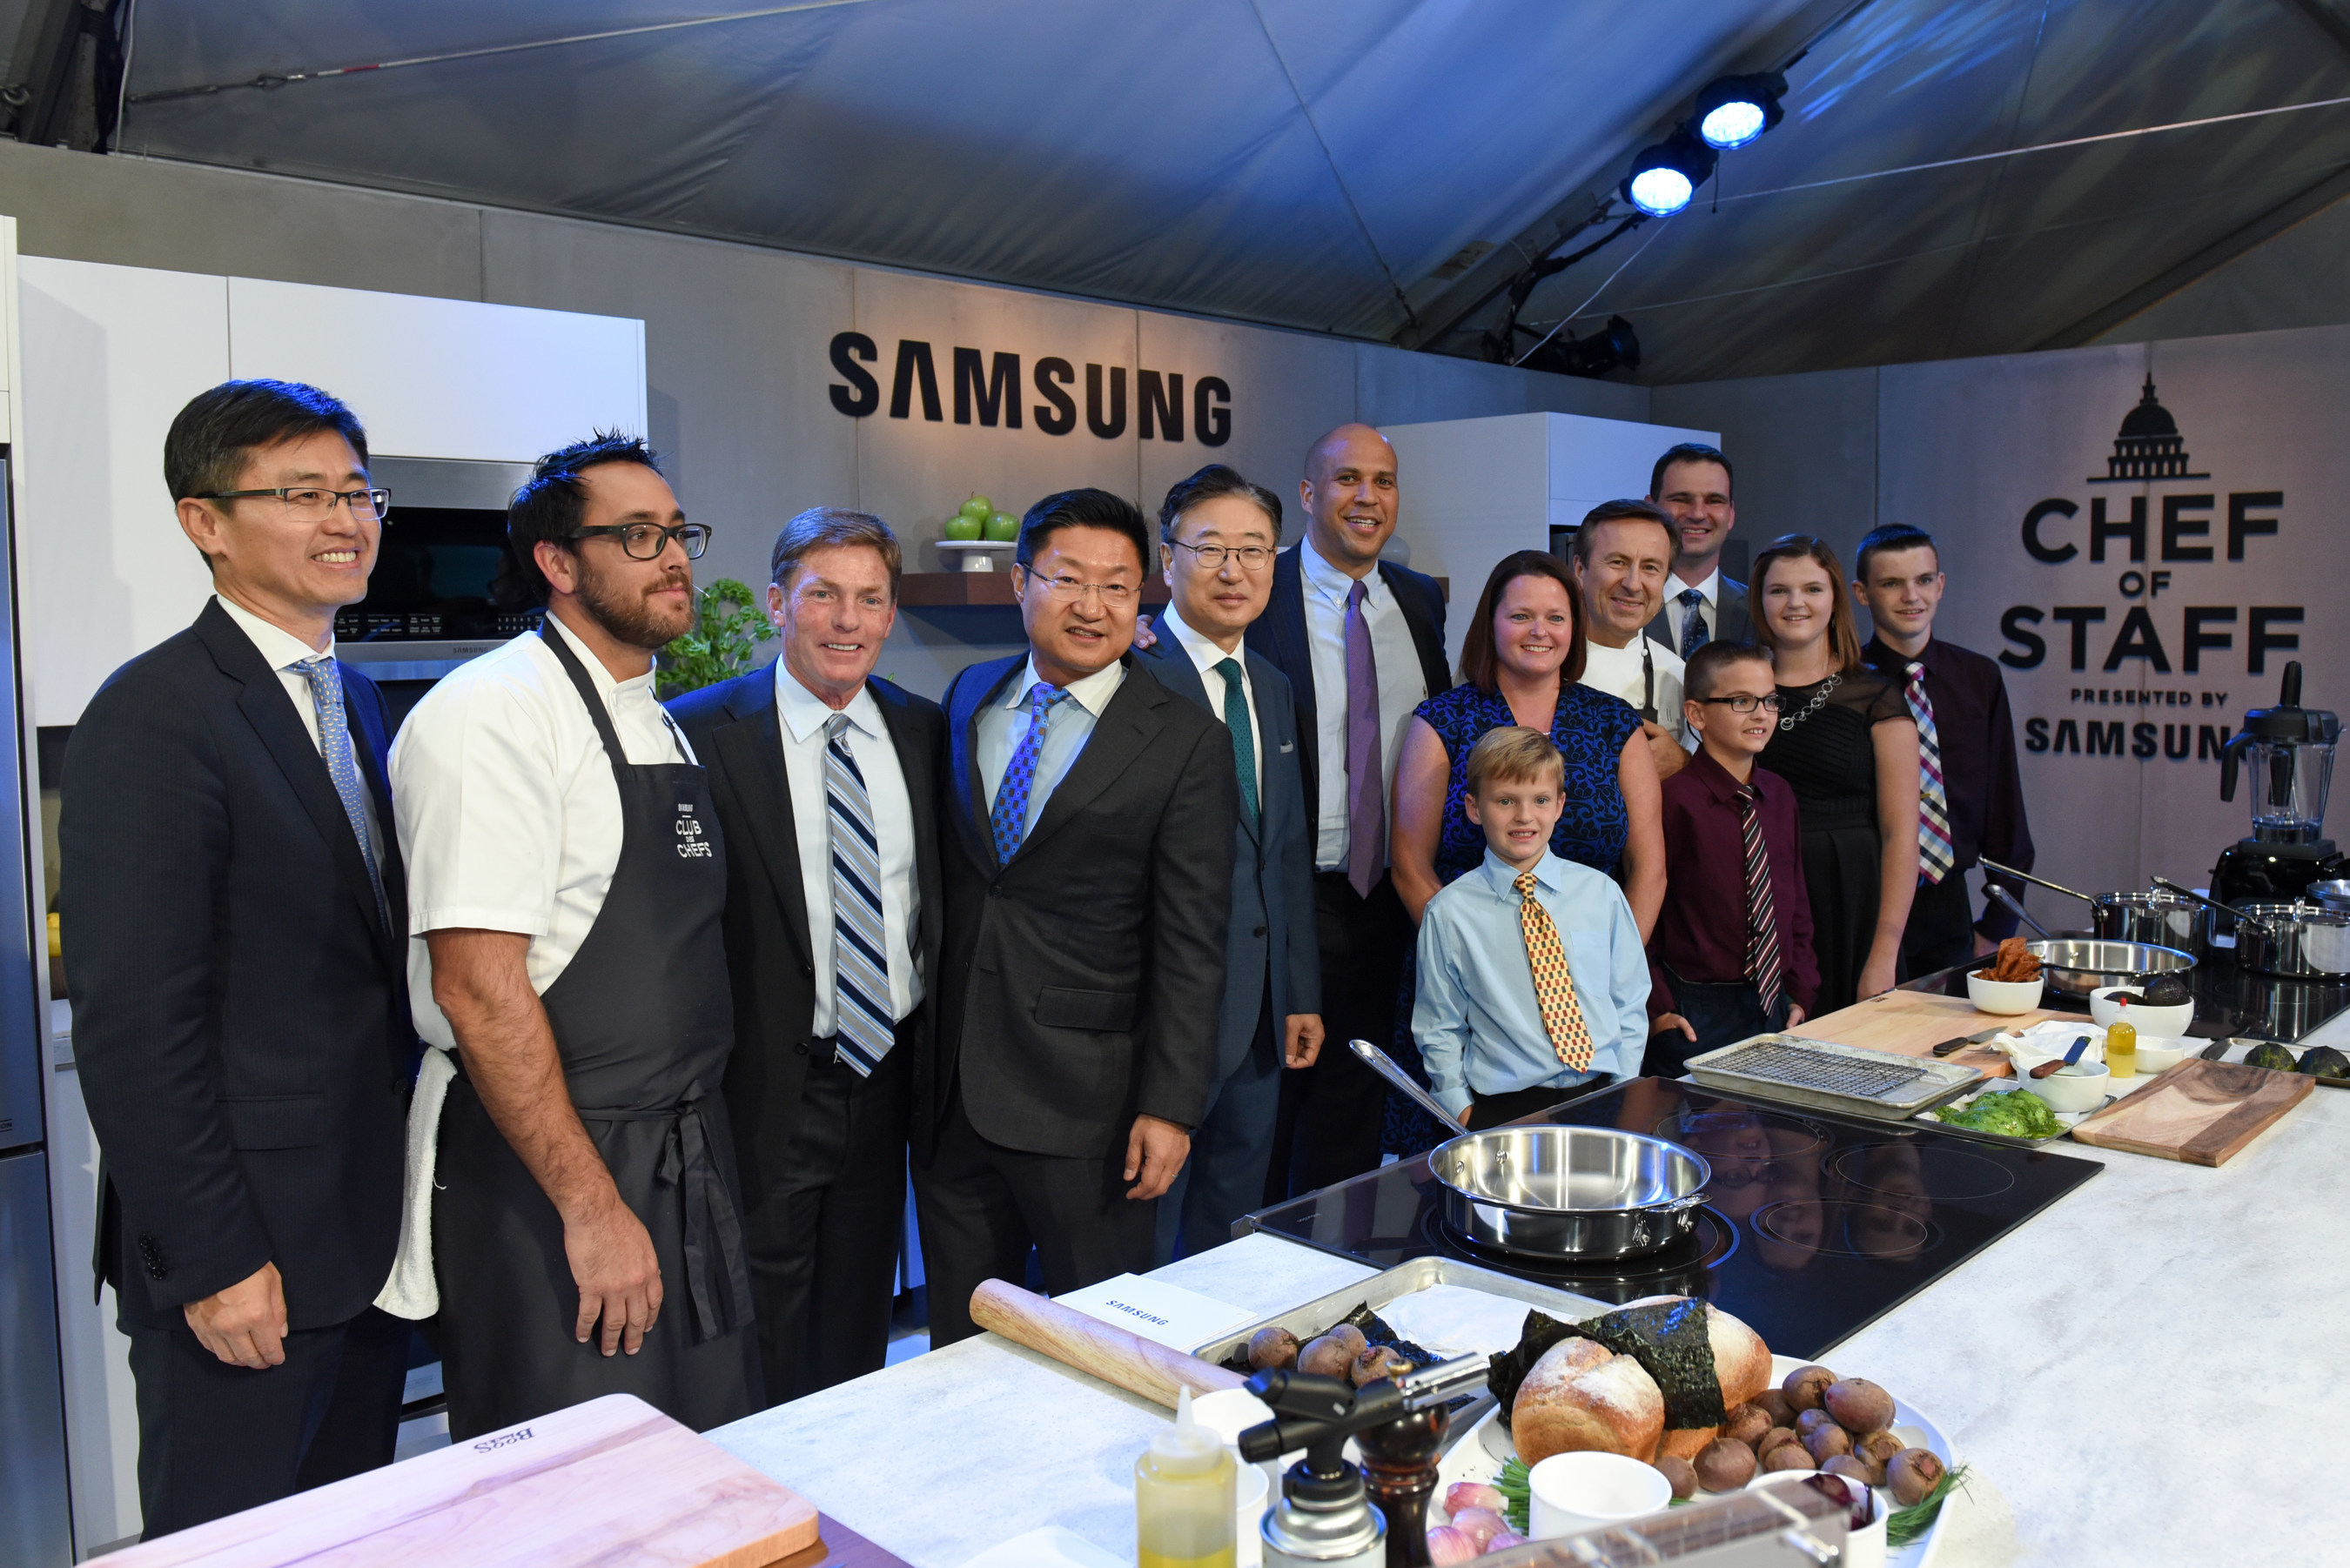 Samsung Electronics to donate over $500,000 to Fisher House Foundation in Support of Military Service Members and Veterans